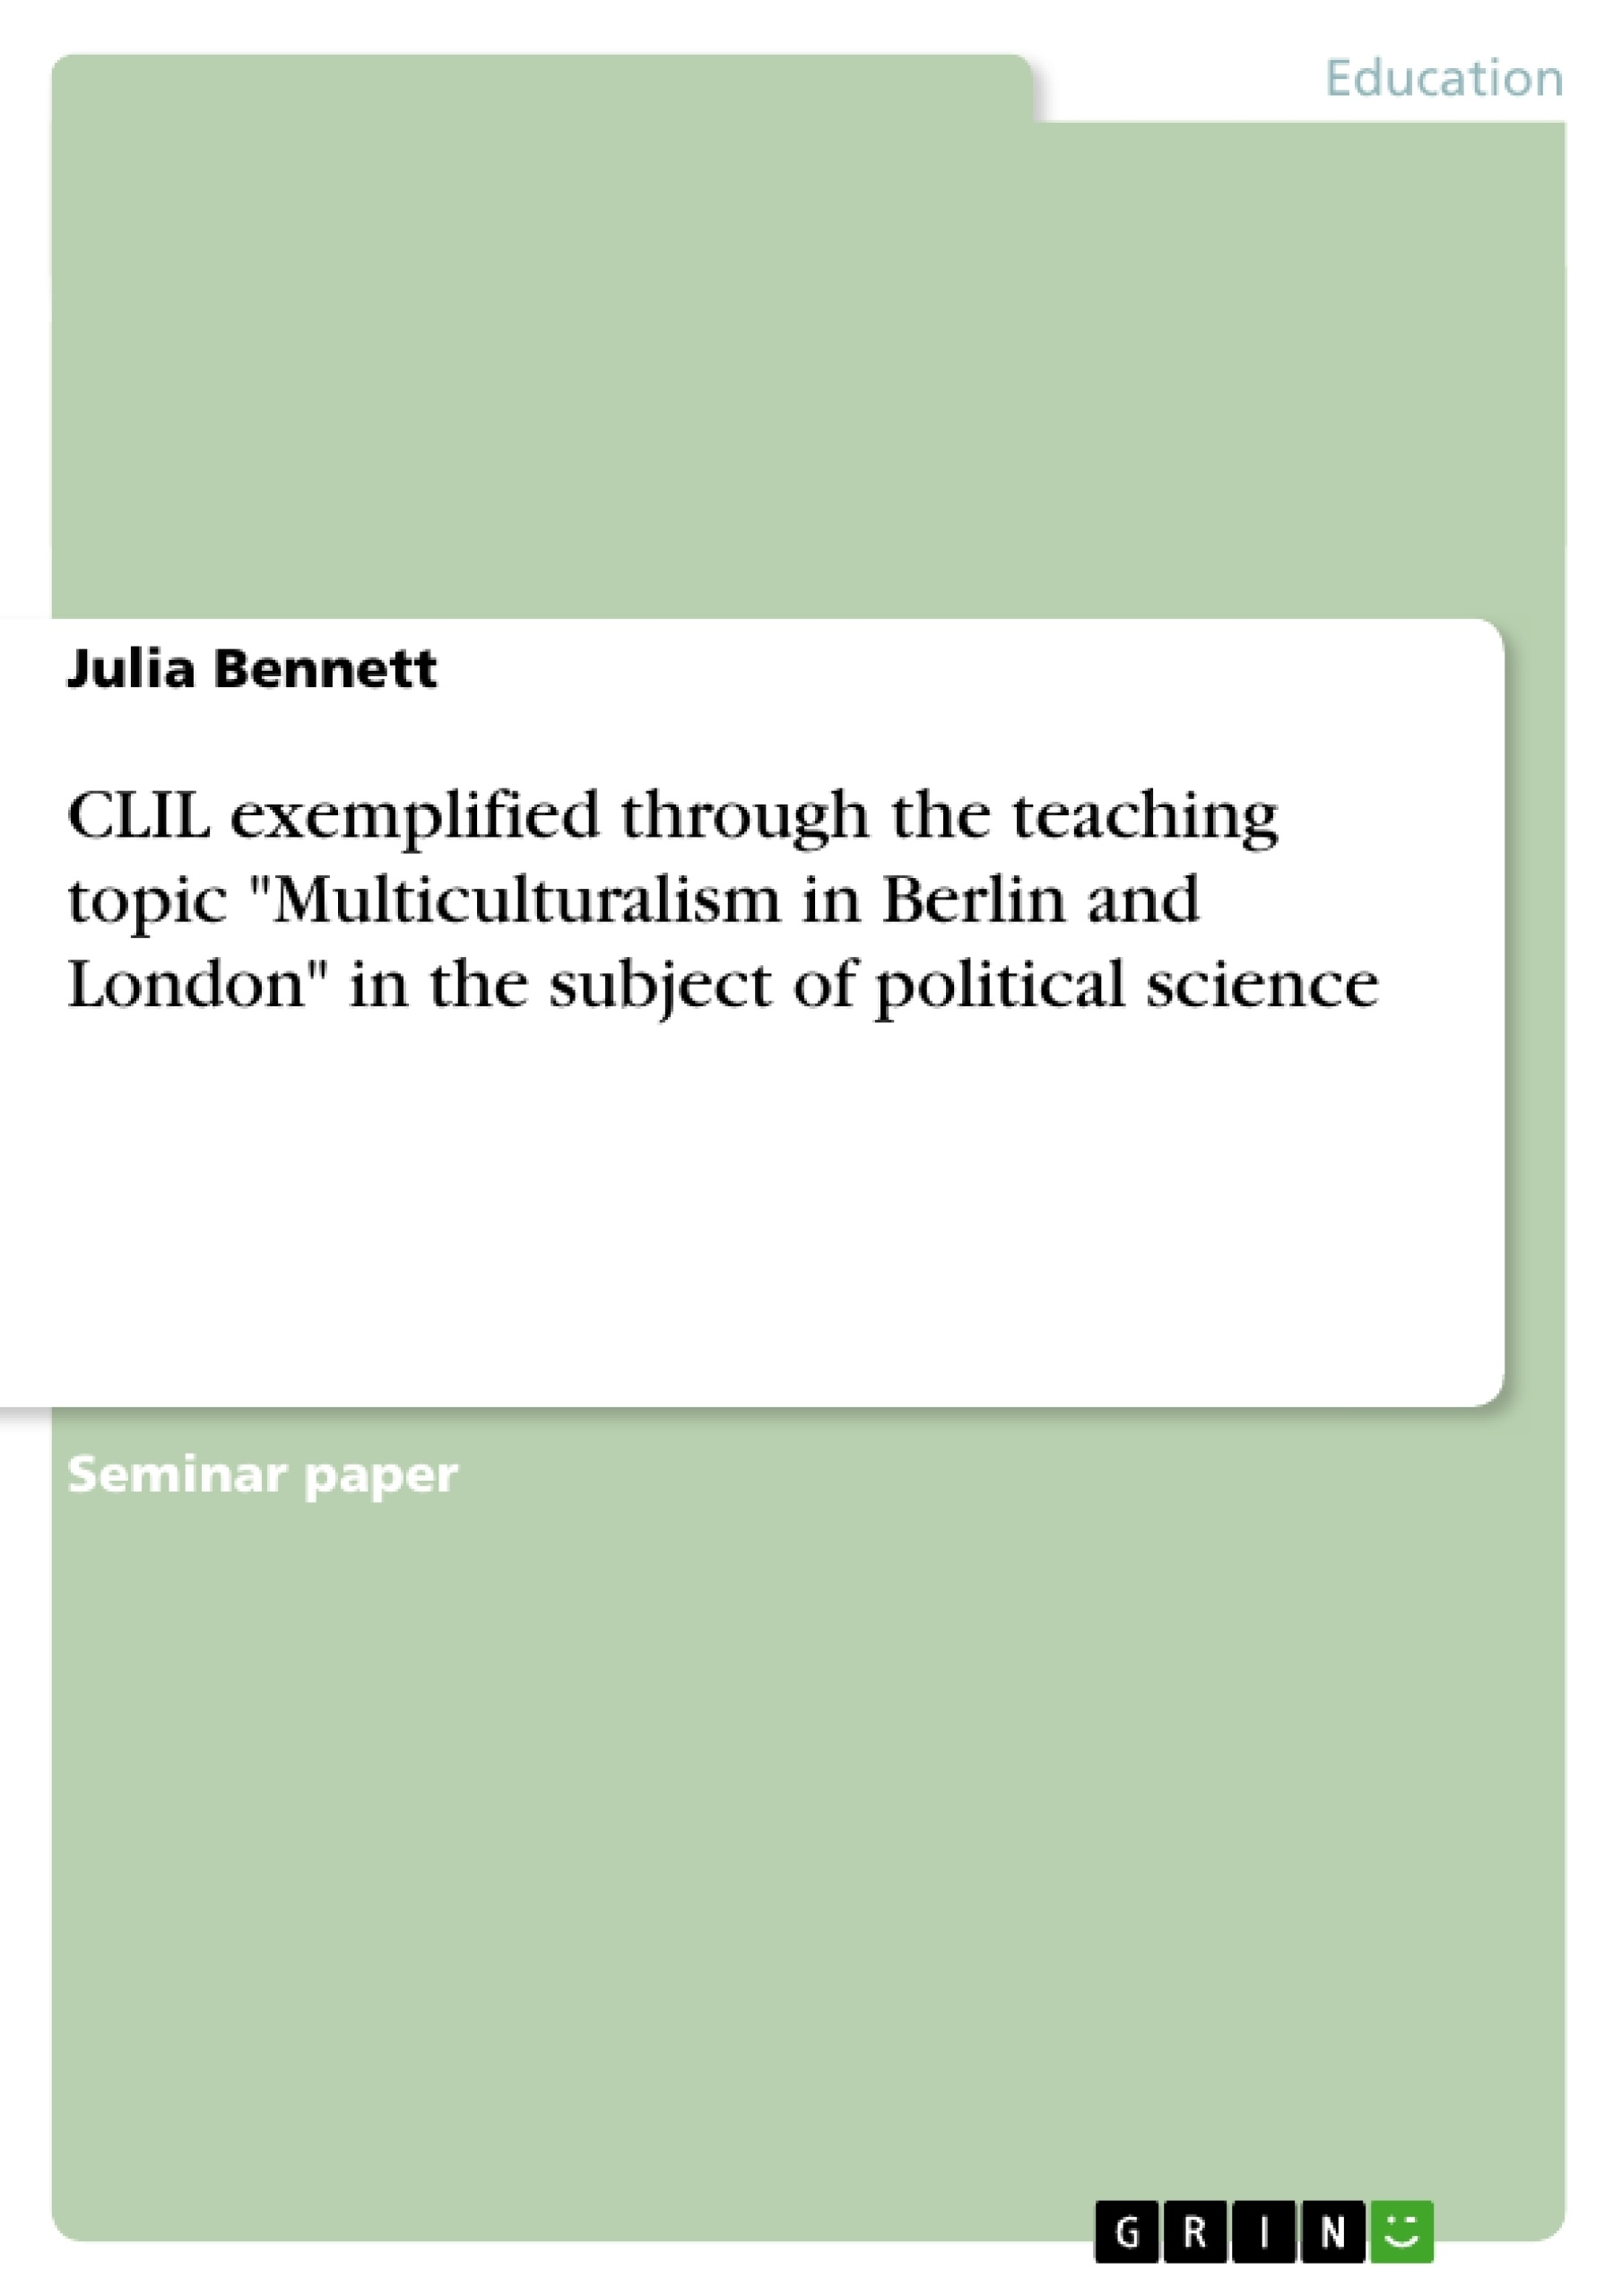 """Title: CLIL exemplified through the teaching topic """"Multiculturalism in Berlin and London"""" in the subject of political science"""